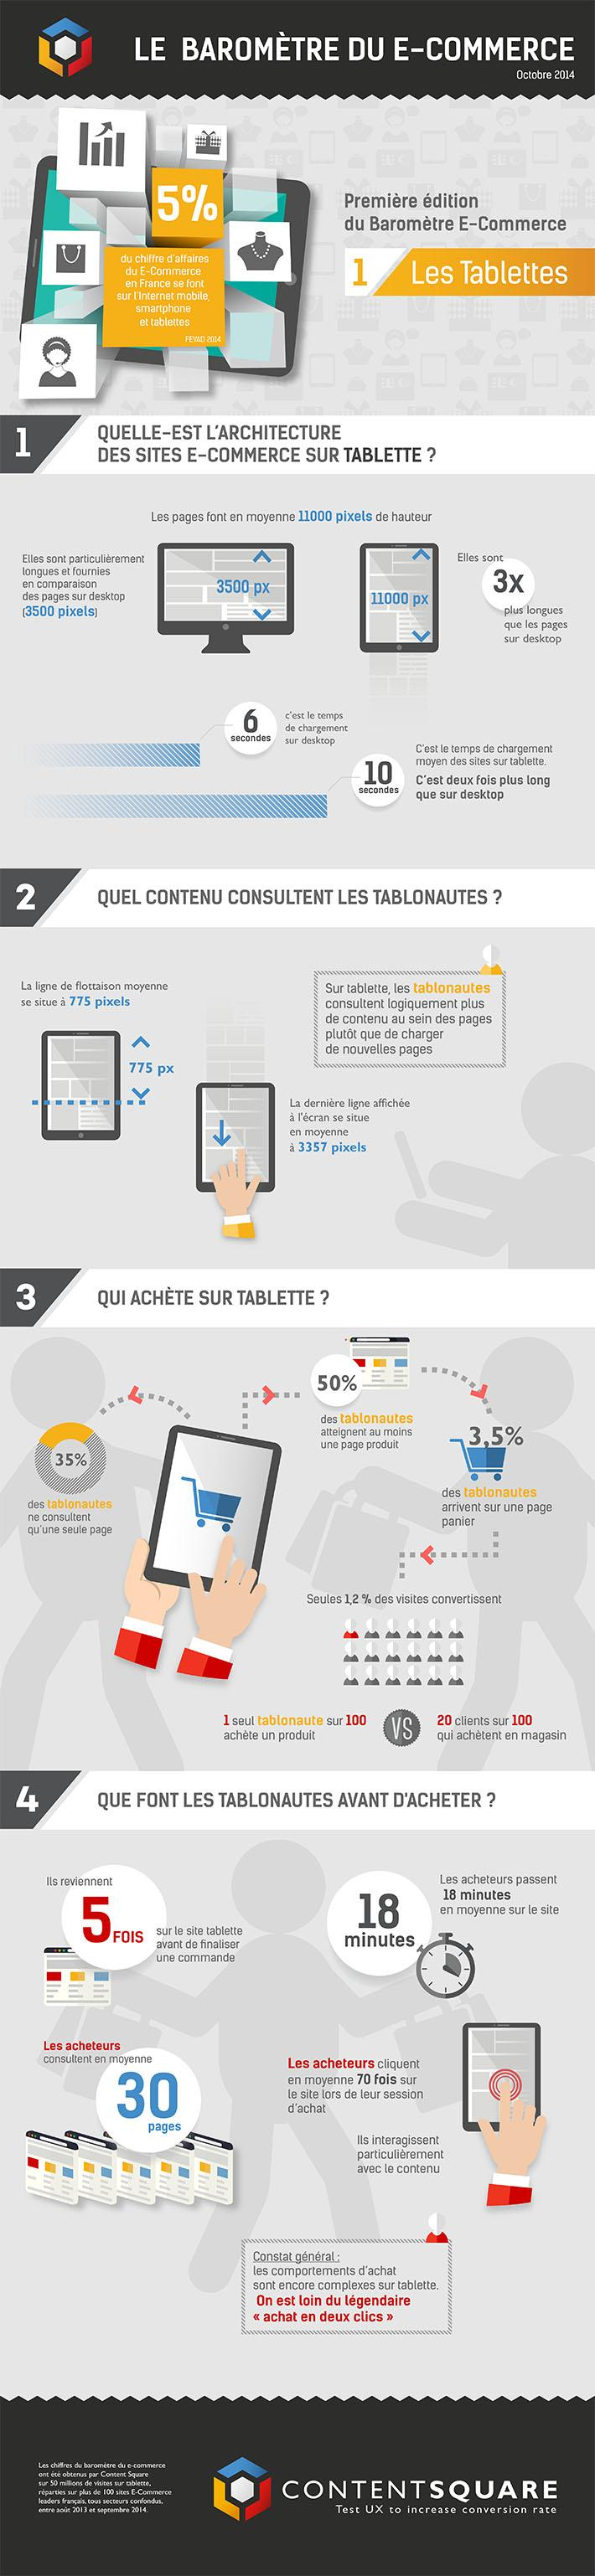 Infographie l'e-commerce sur tablettes en octobre 2014 en France